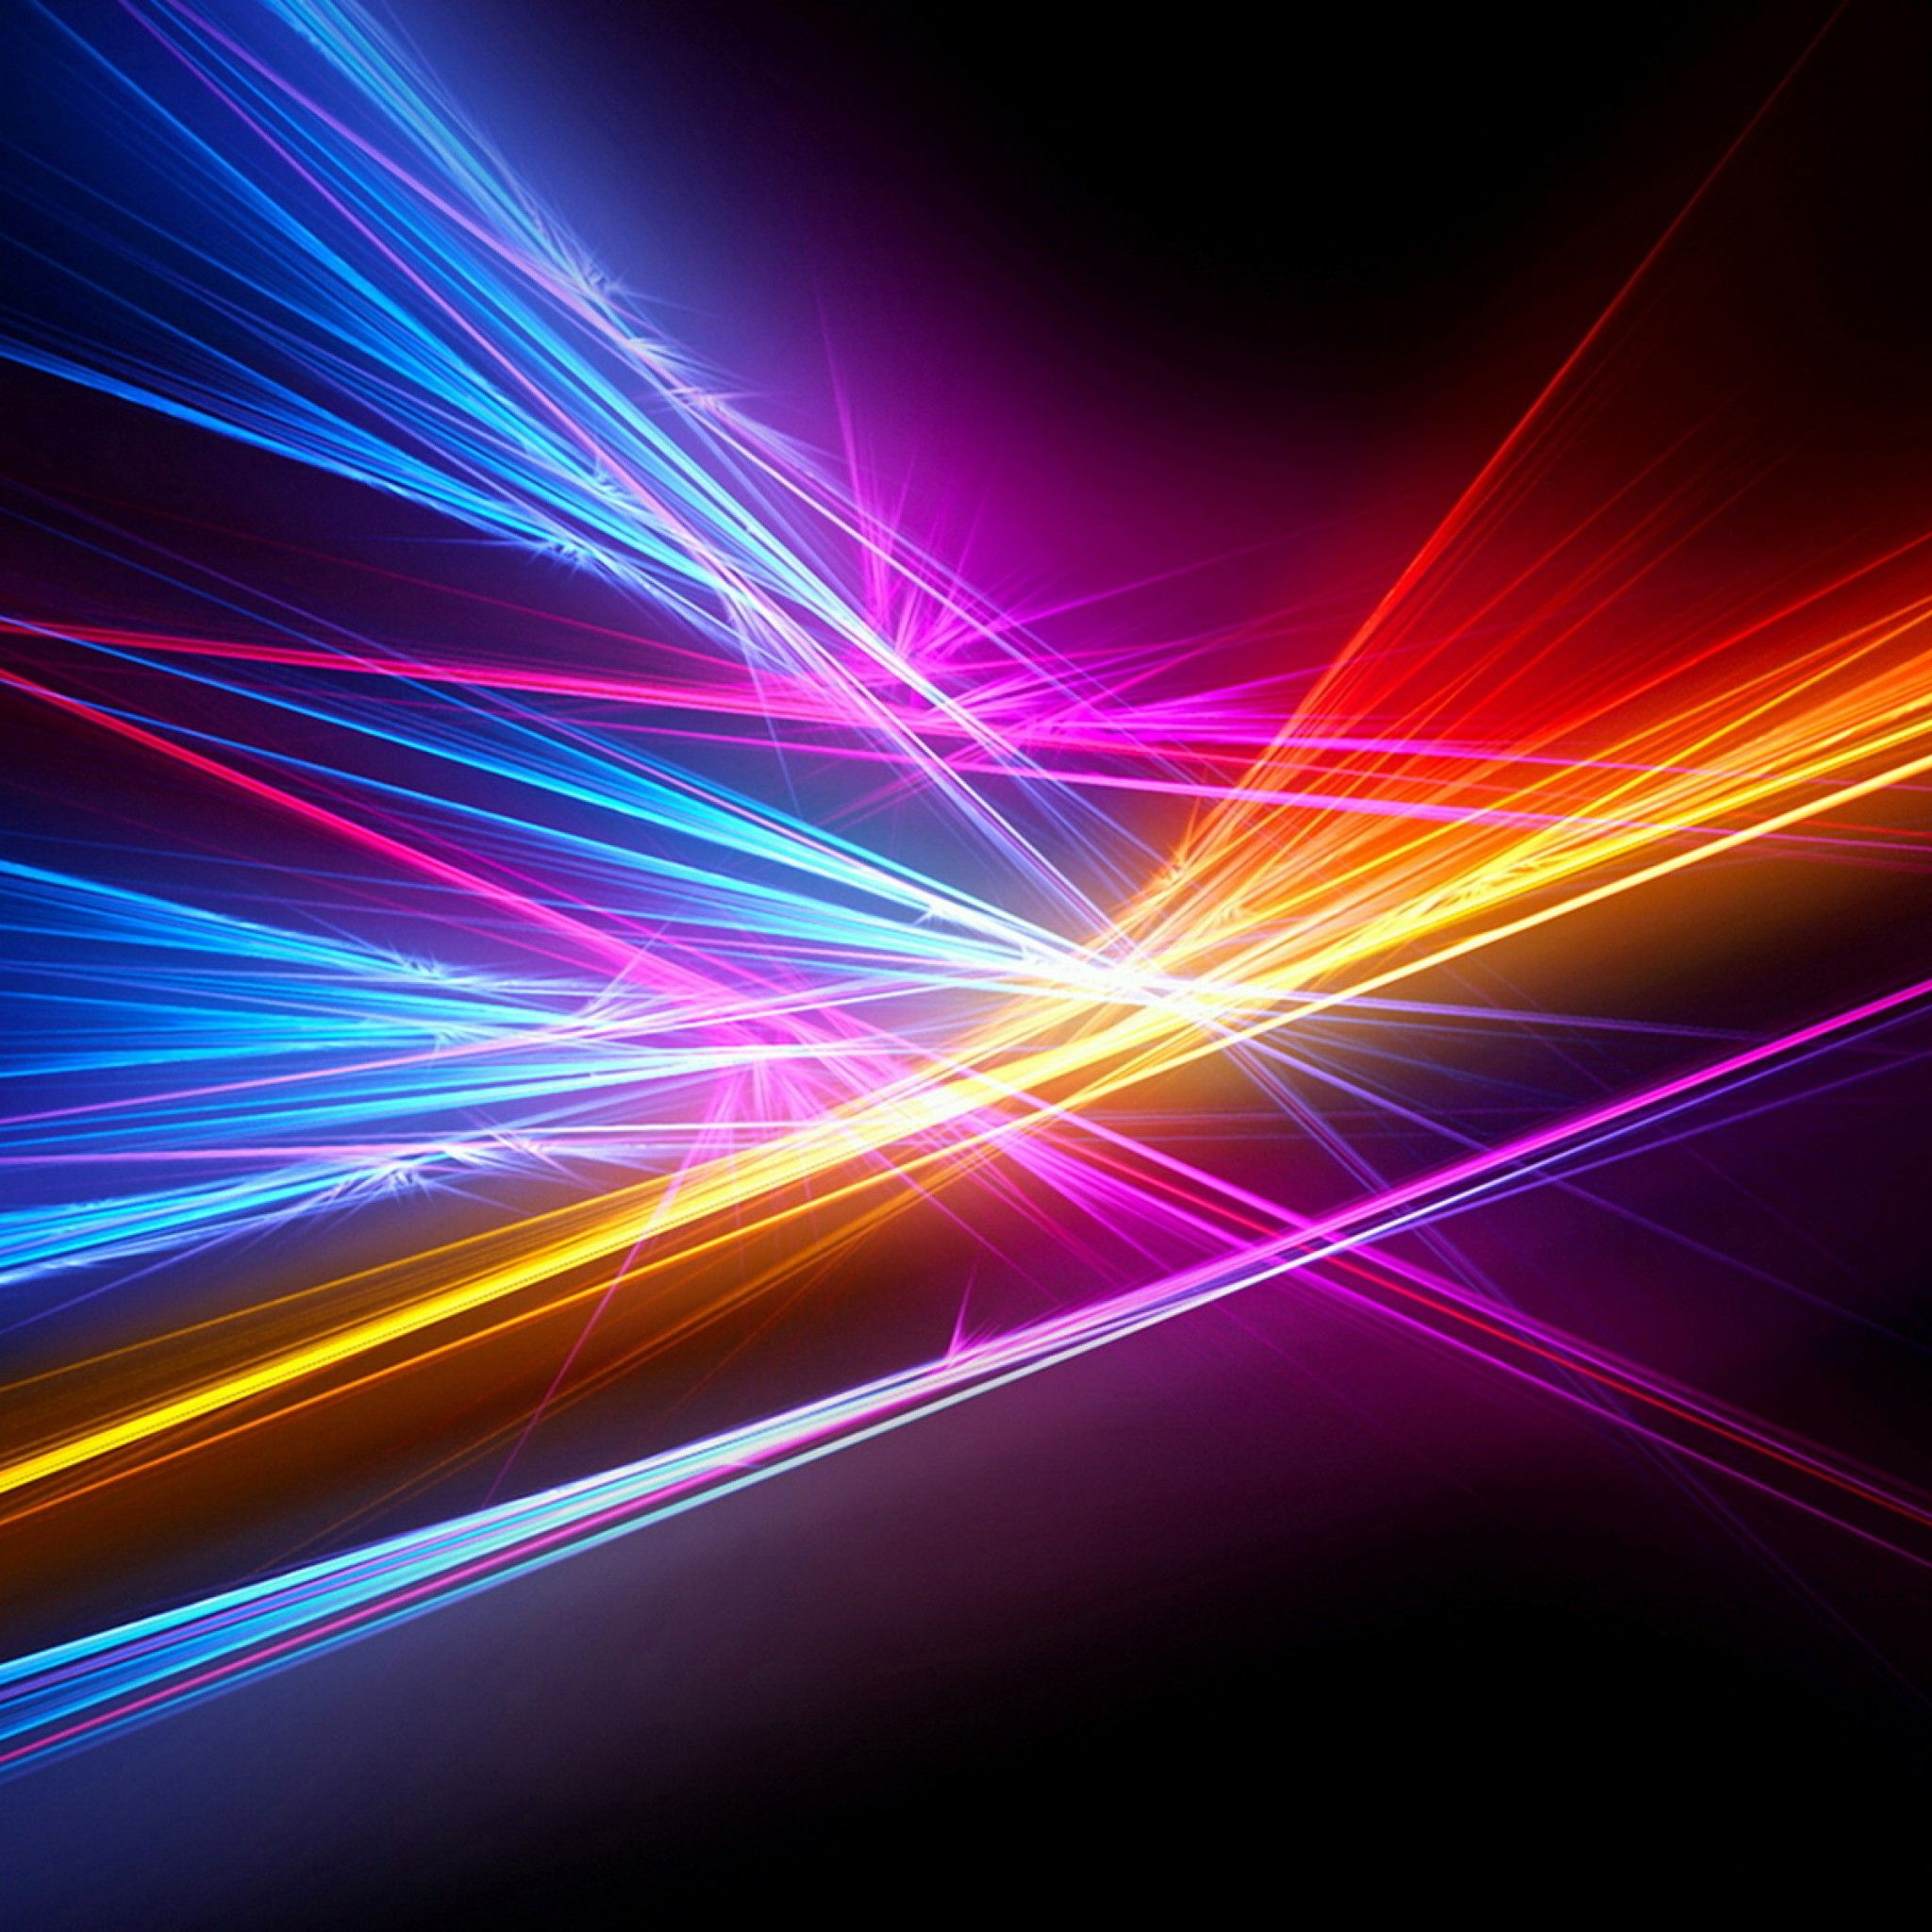 Wallpaper Rays, Color, Black Background